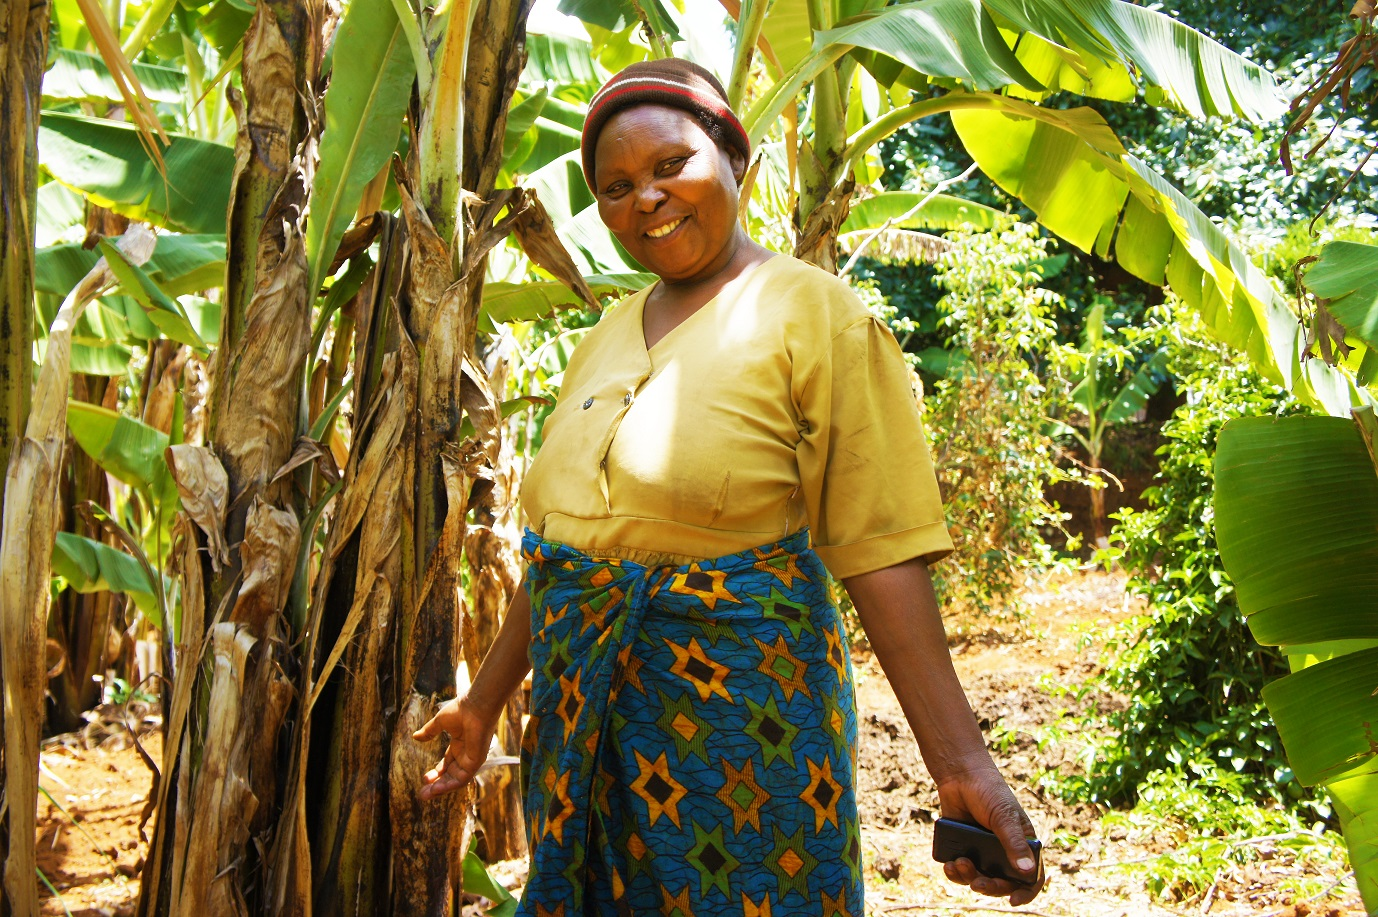 Farmer by her banana trees